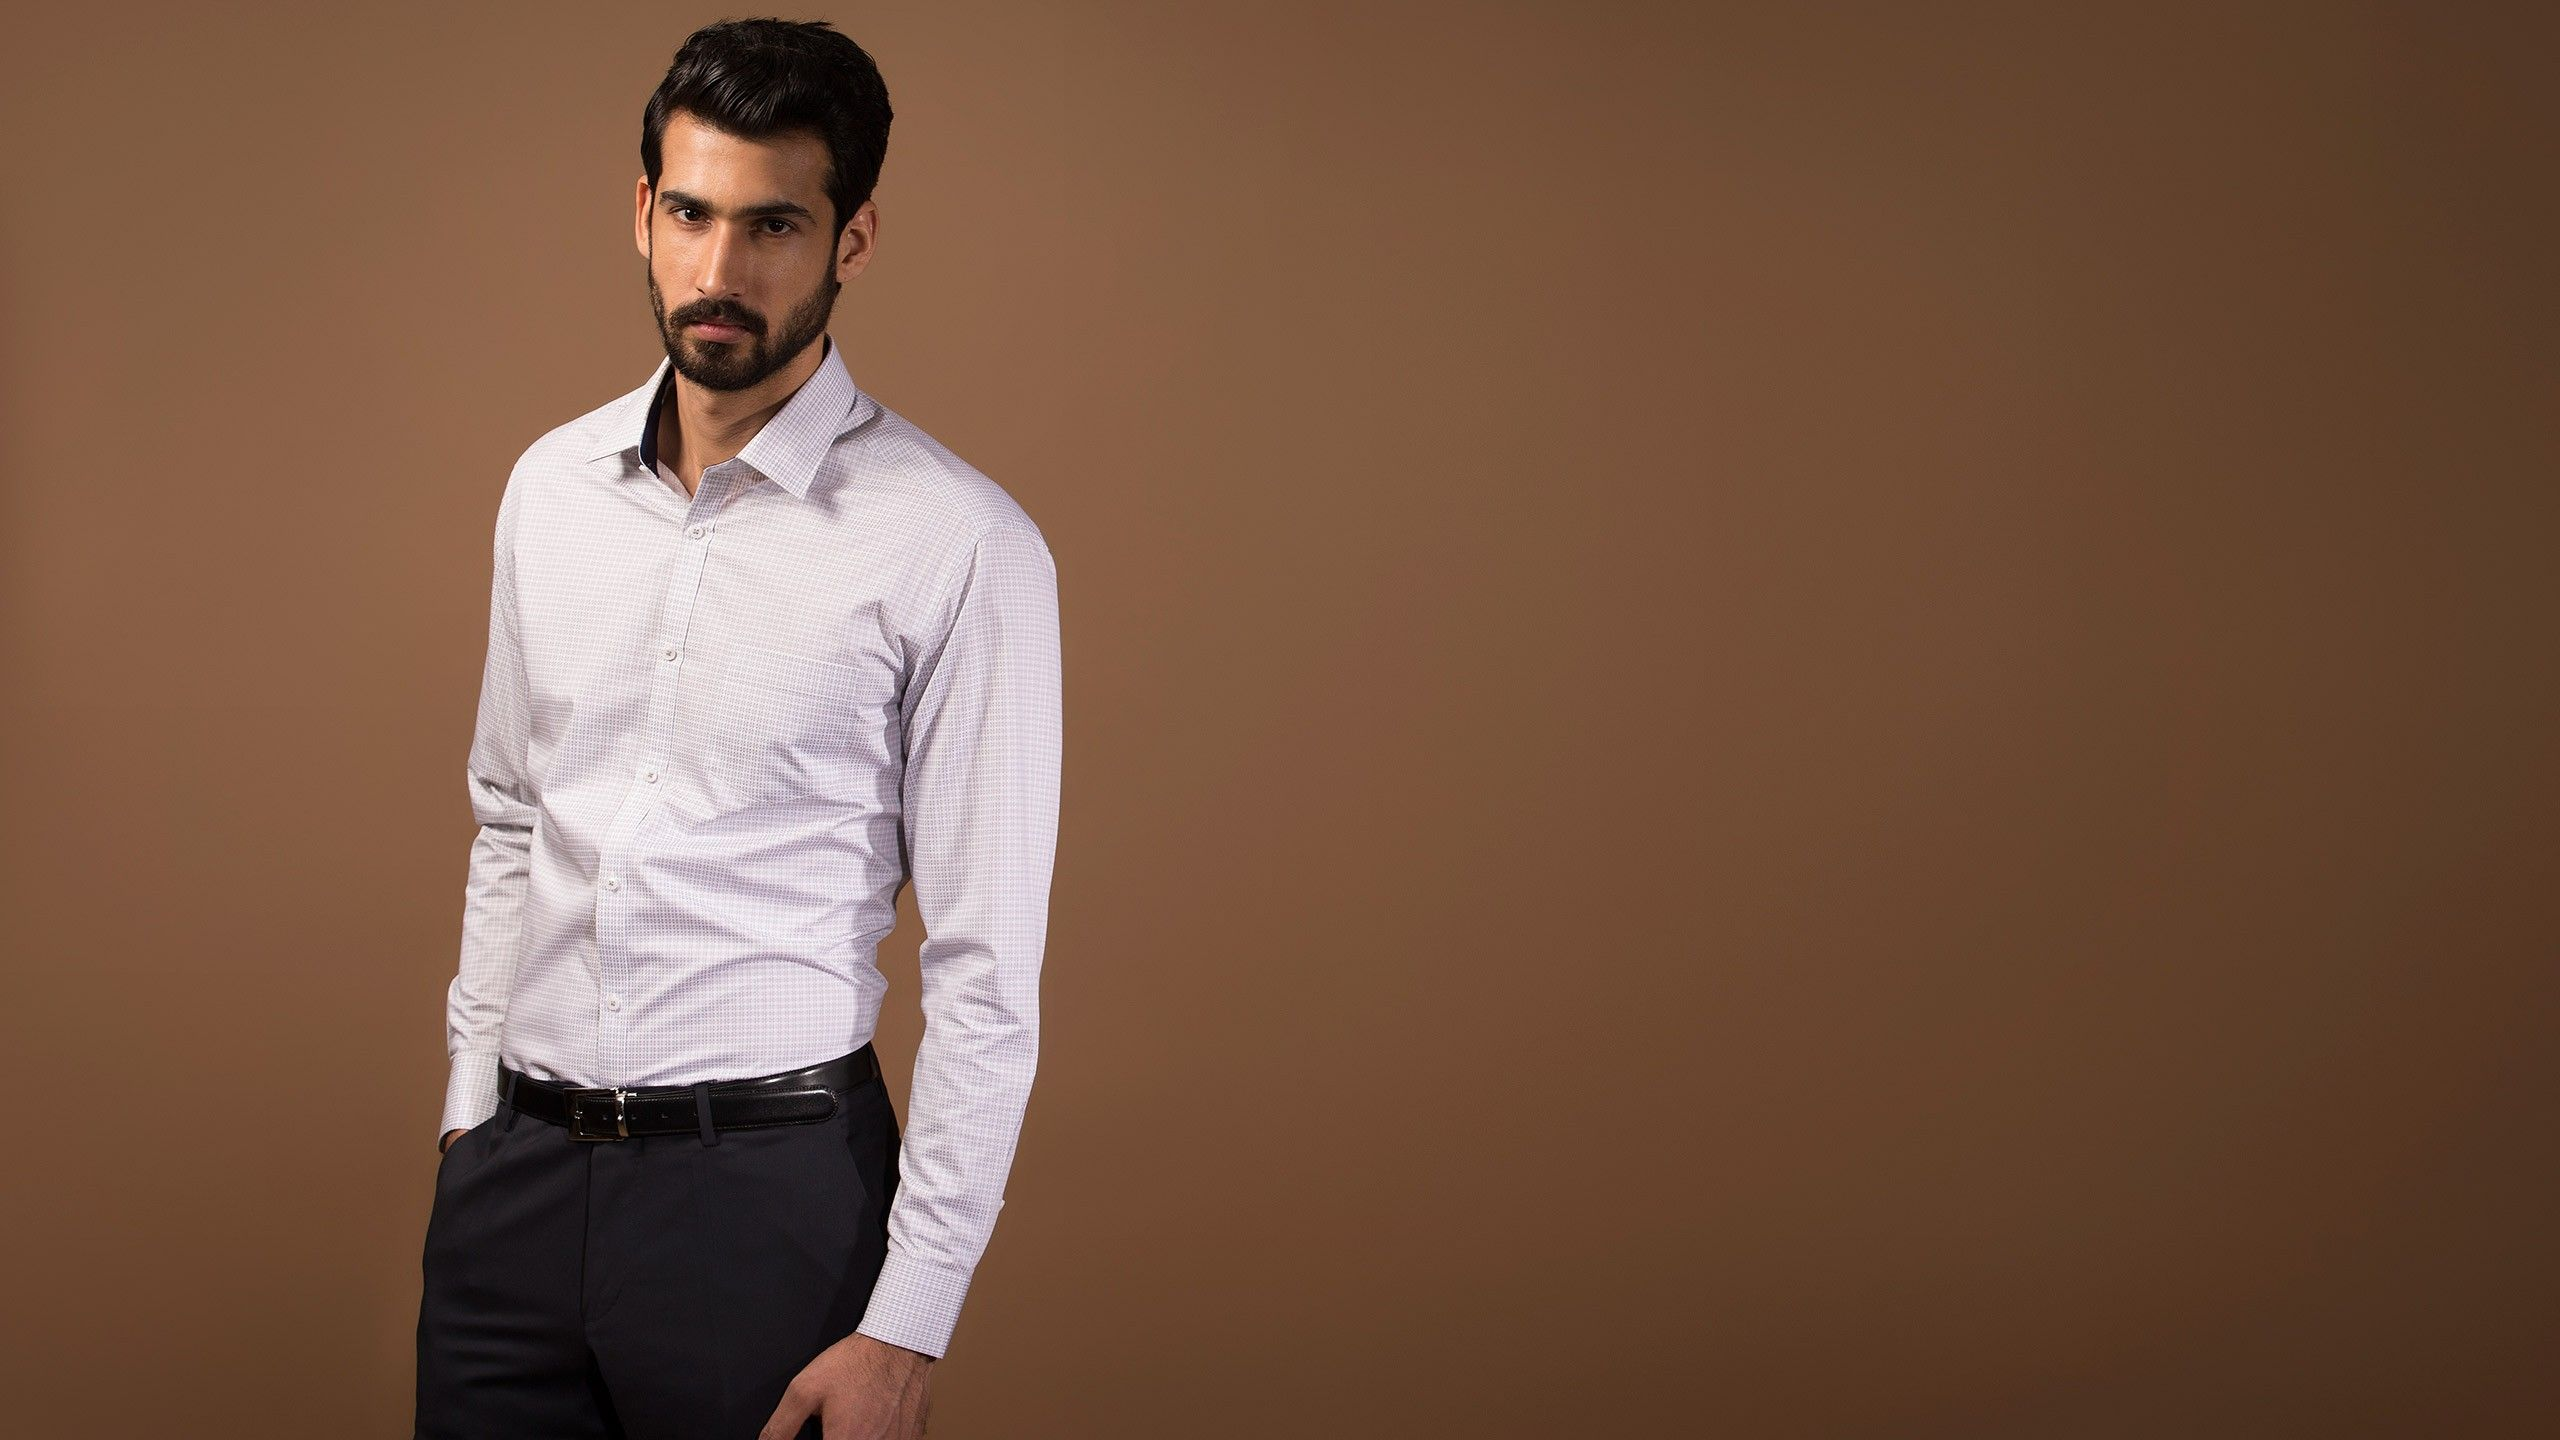 Buy SUM GREY Formal Shirts Online at Andamen at the best price ...